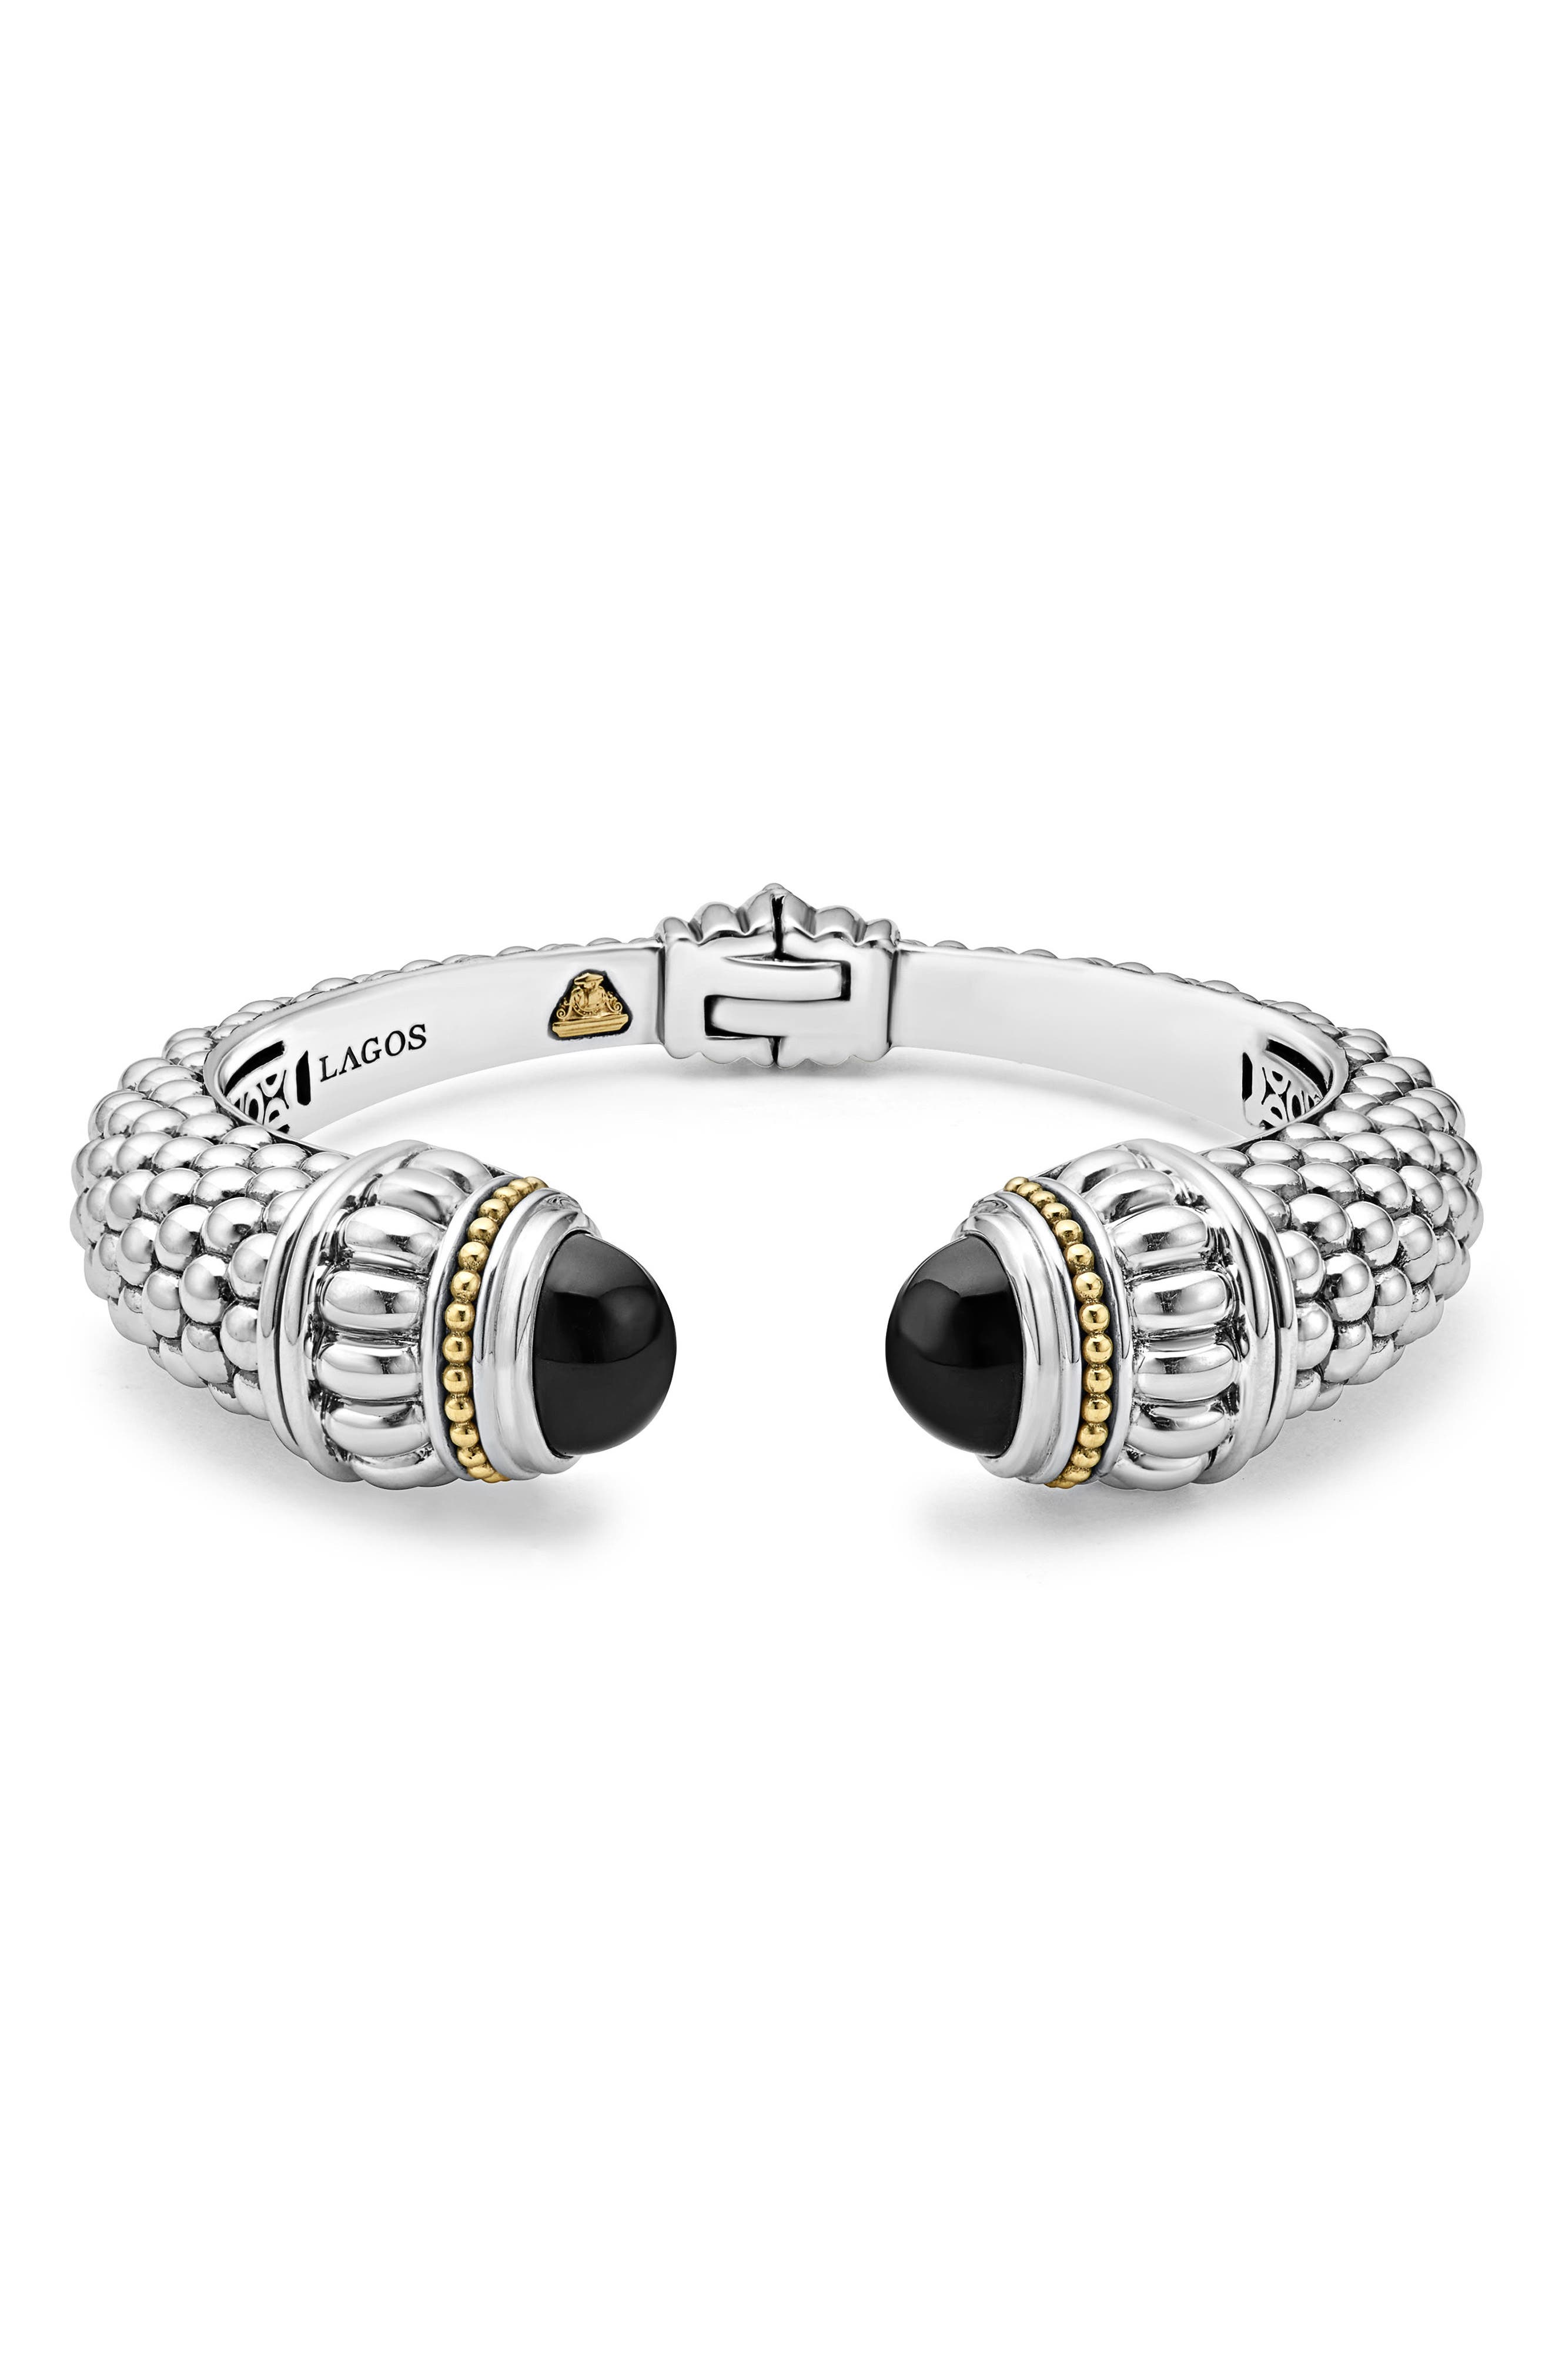 Caviar Color Hinge Wrist Cuff,                             Main thumbnail 1, color,                             Black Onyx